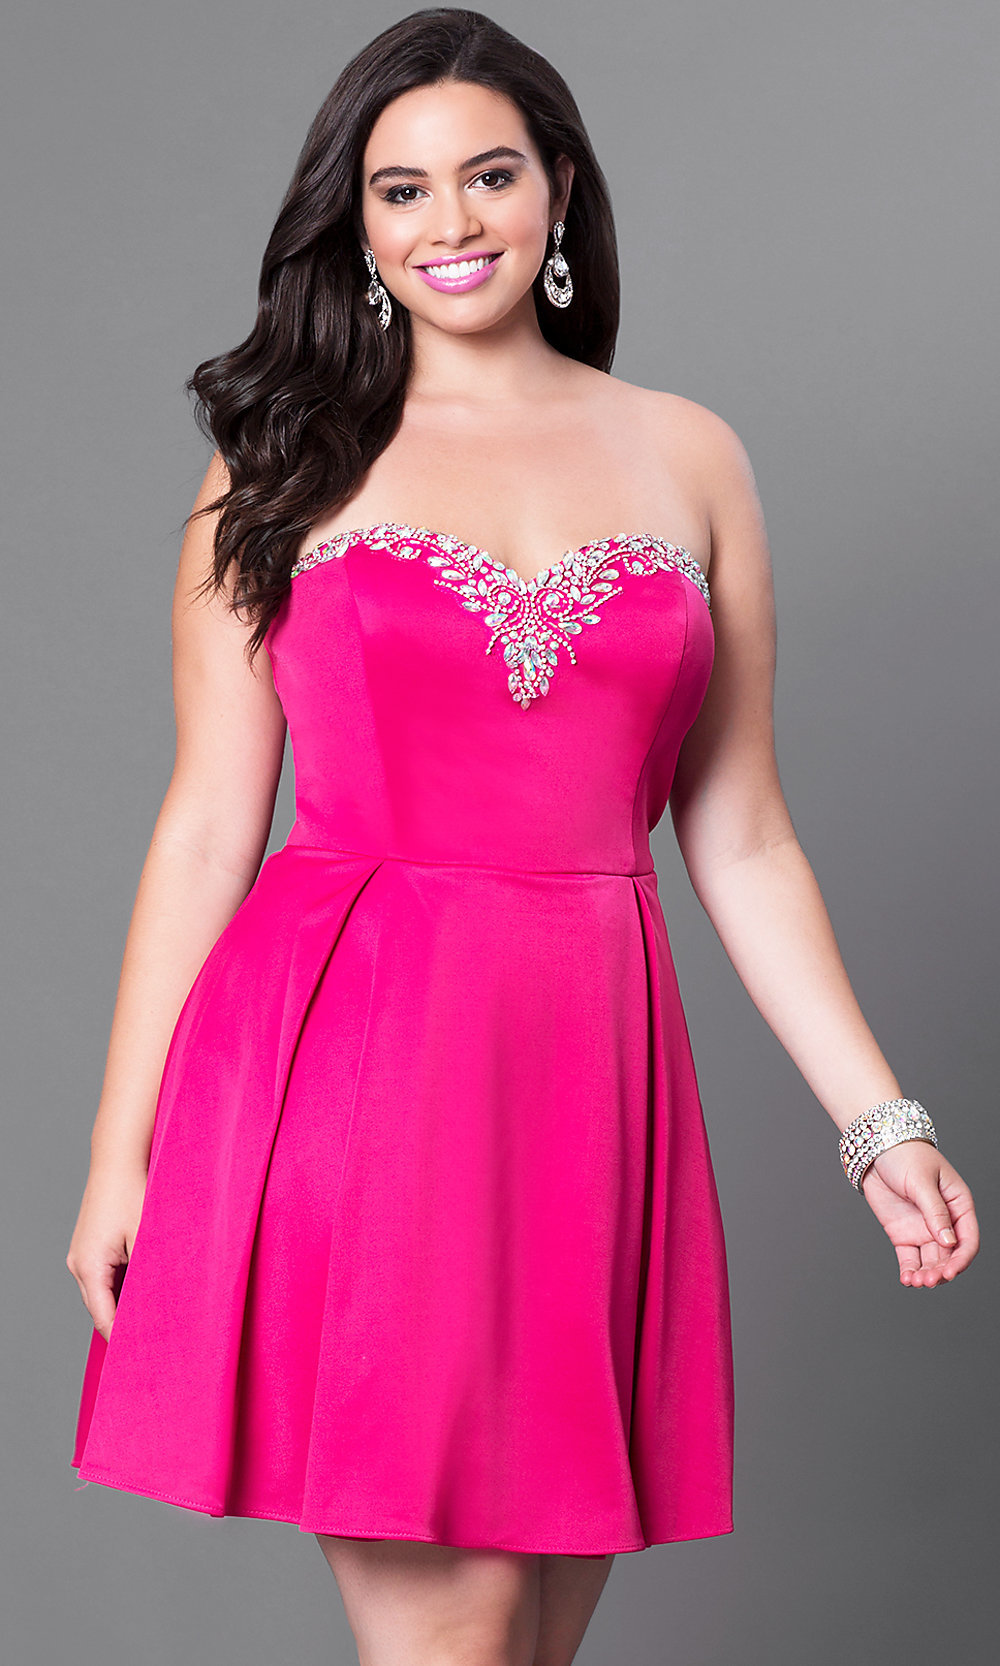 strapless plussize pink satin party dress promgirl